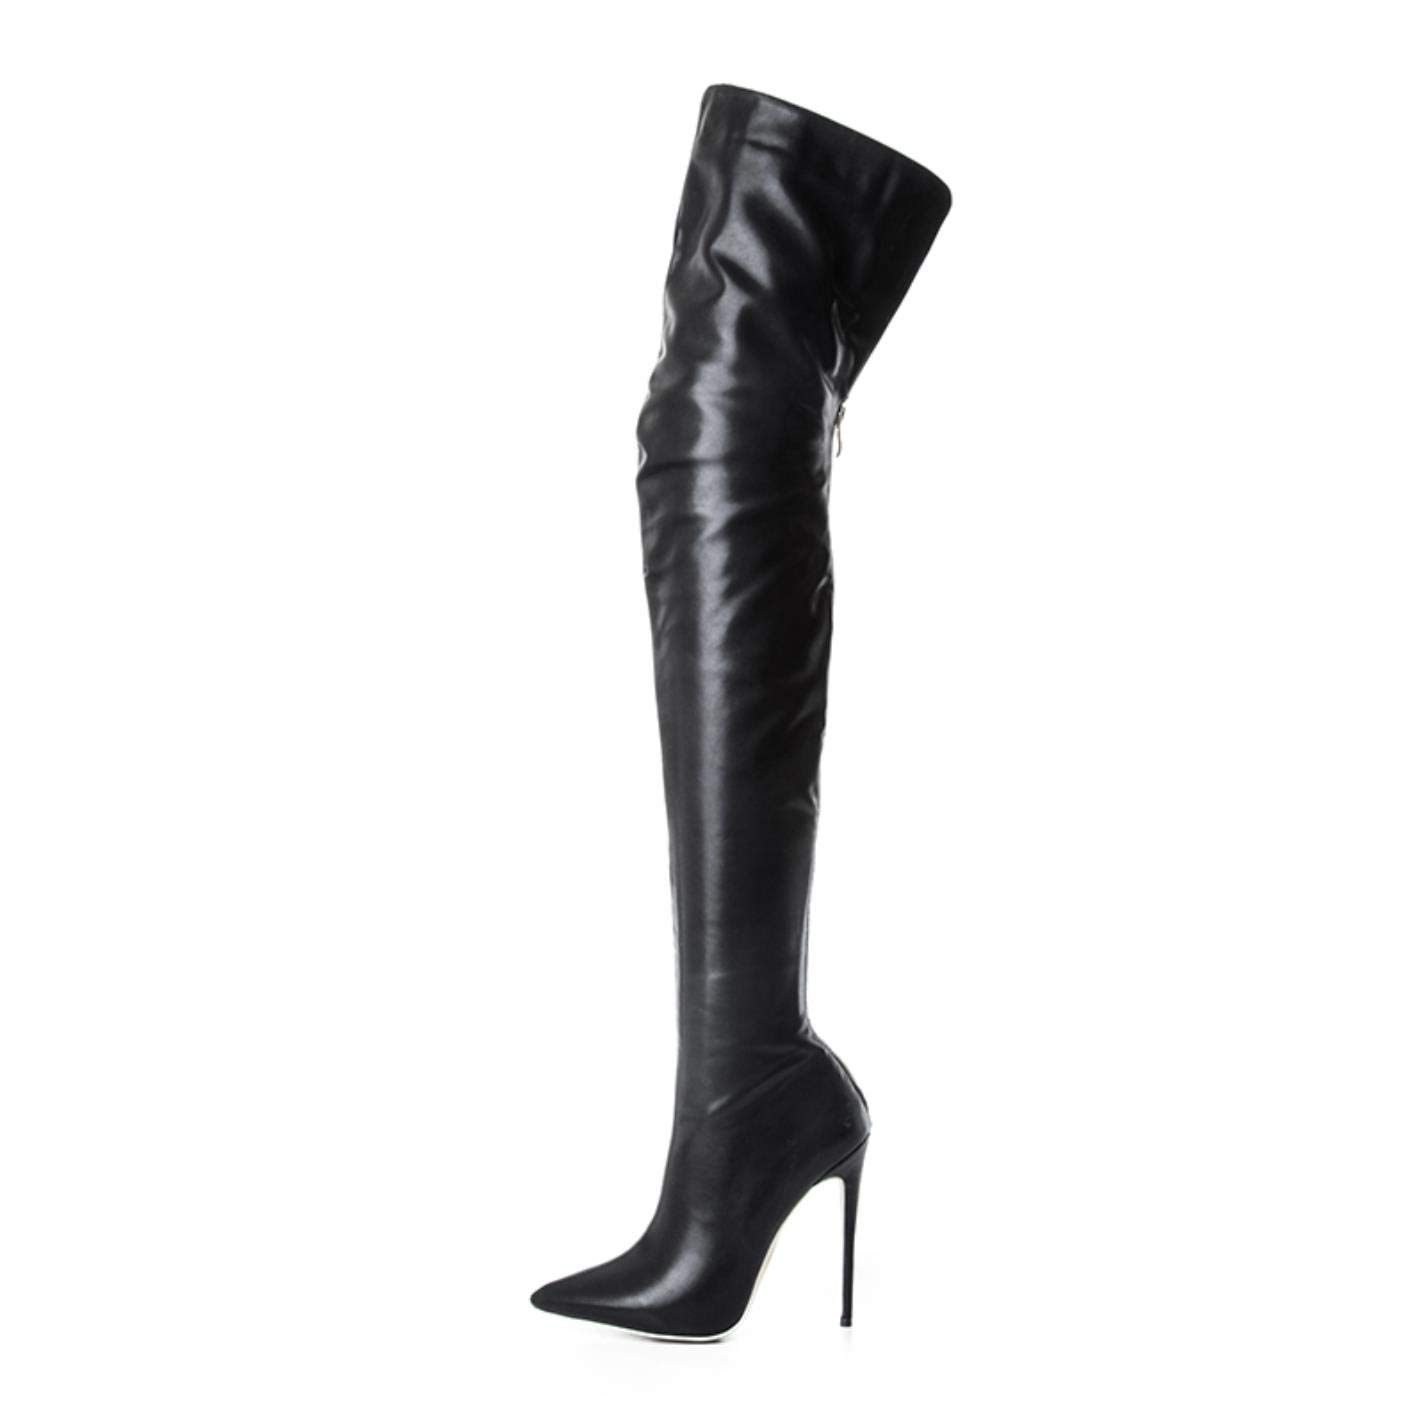 Black Leather Women's fashion over the knee high boots sexy high heels back zipper